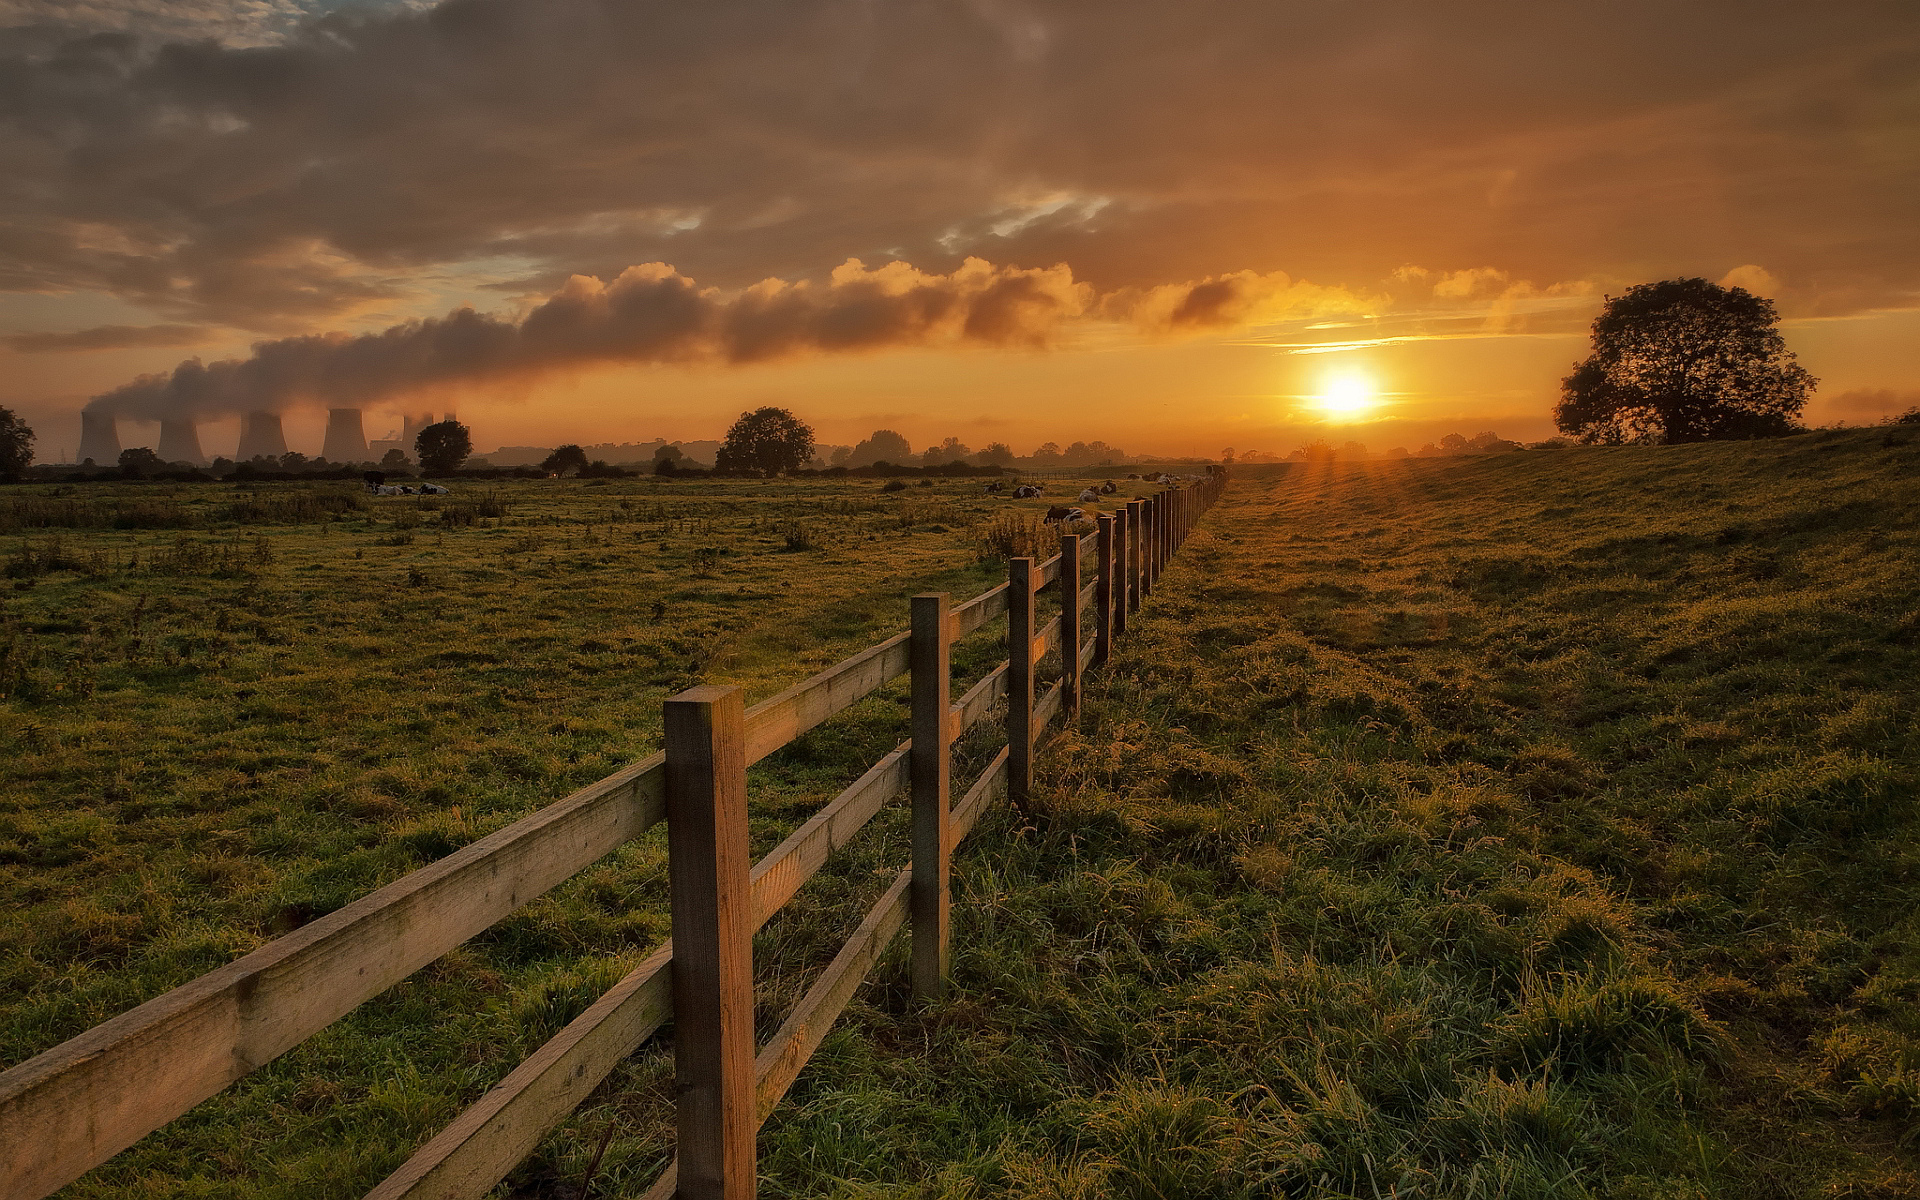 Rural landscape sunset